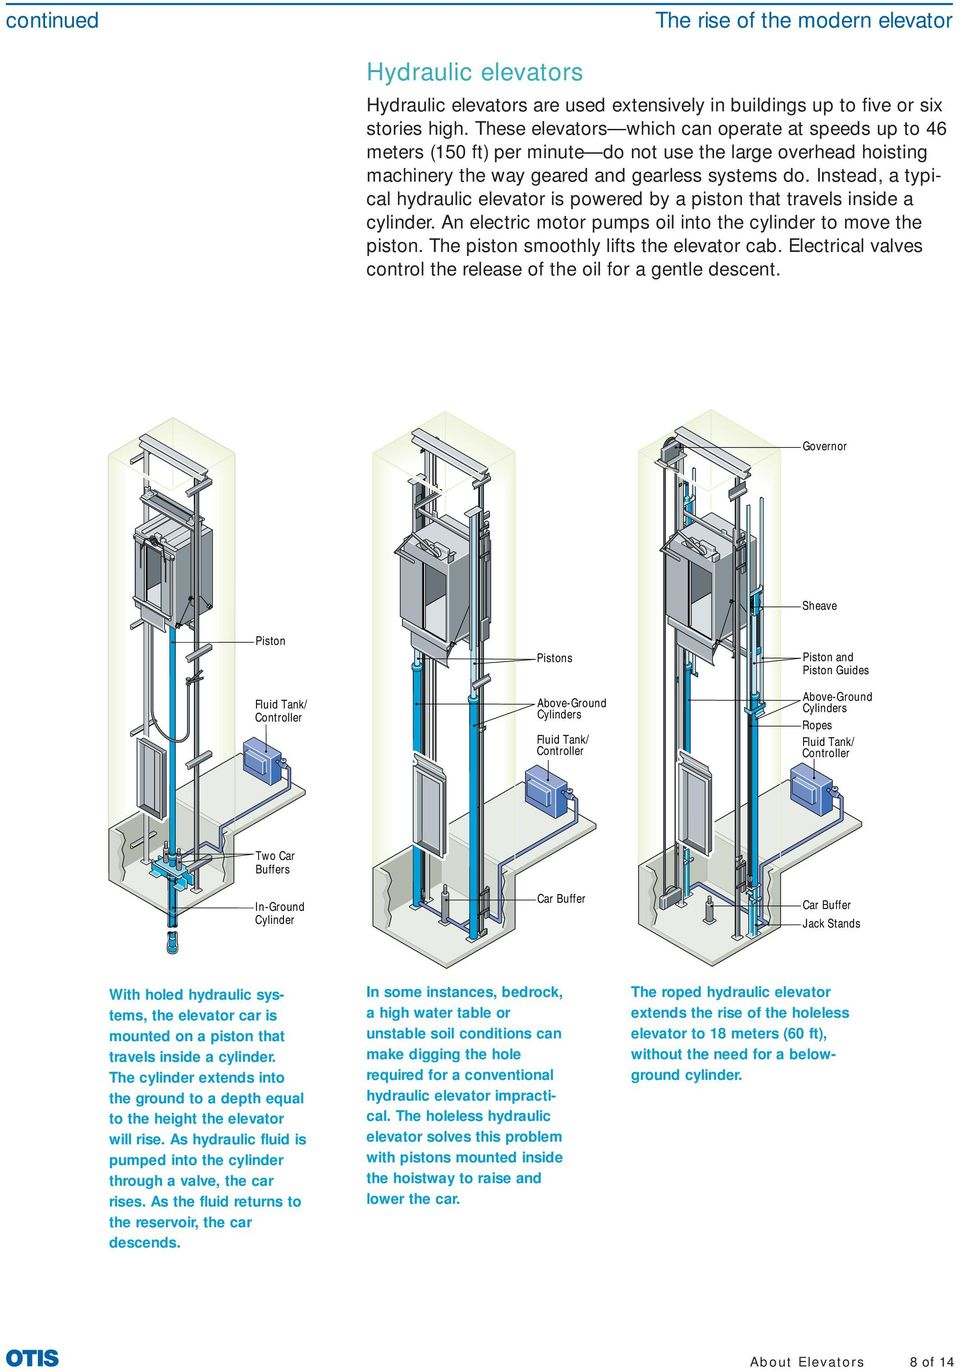 Instead, a typical hydraulic elevator is powered by a piston that travels inside a cylinder. An electric motor pumps oil into the cylinder to move the piston.